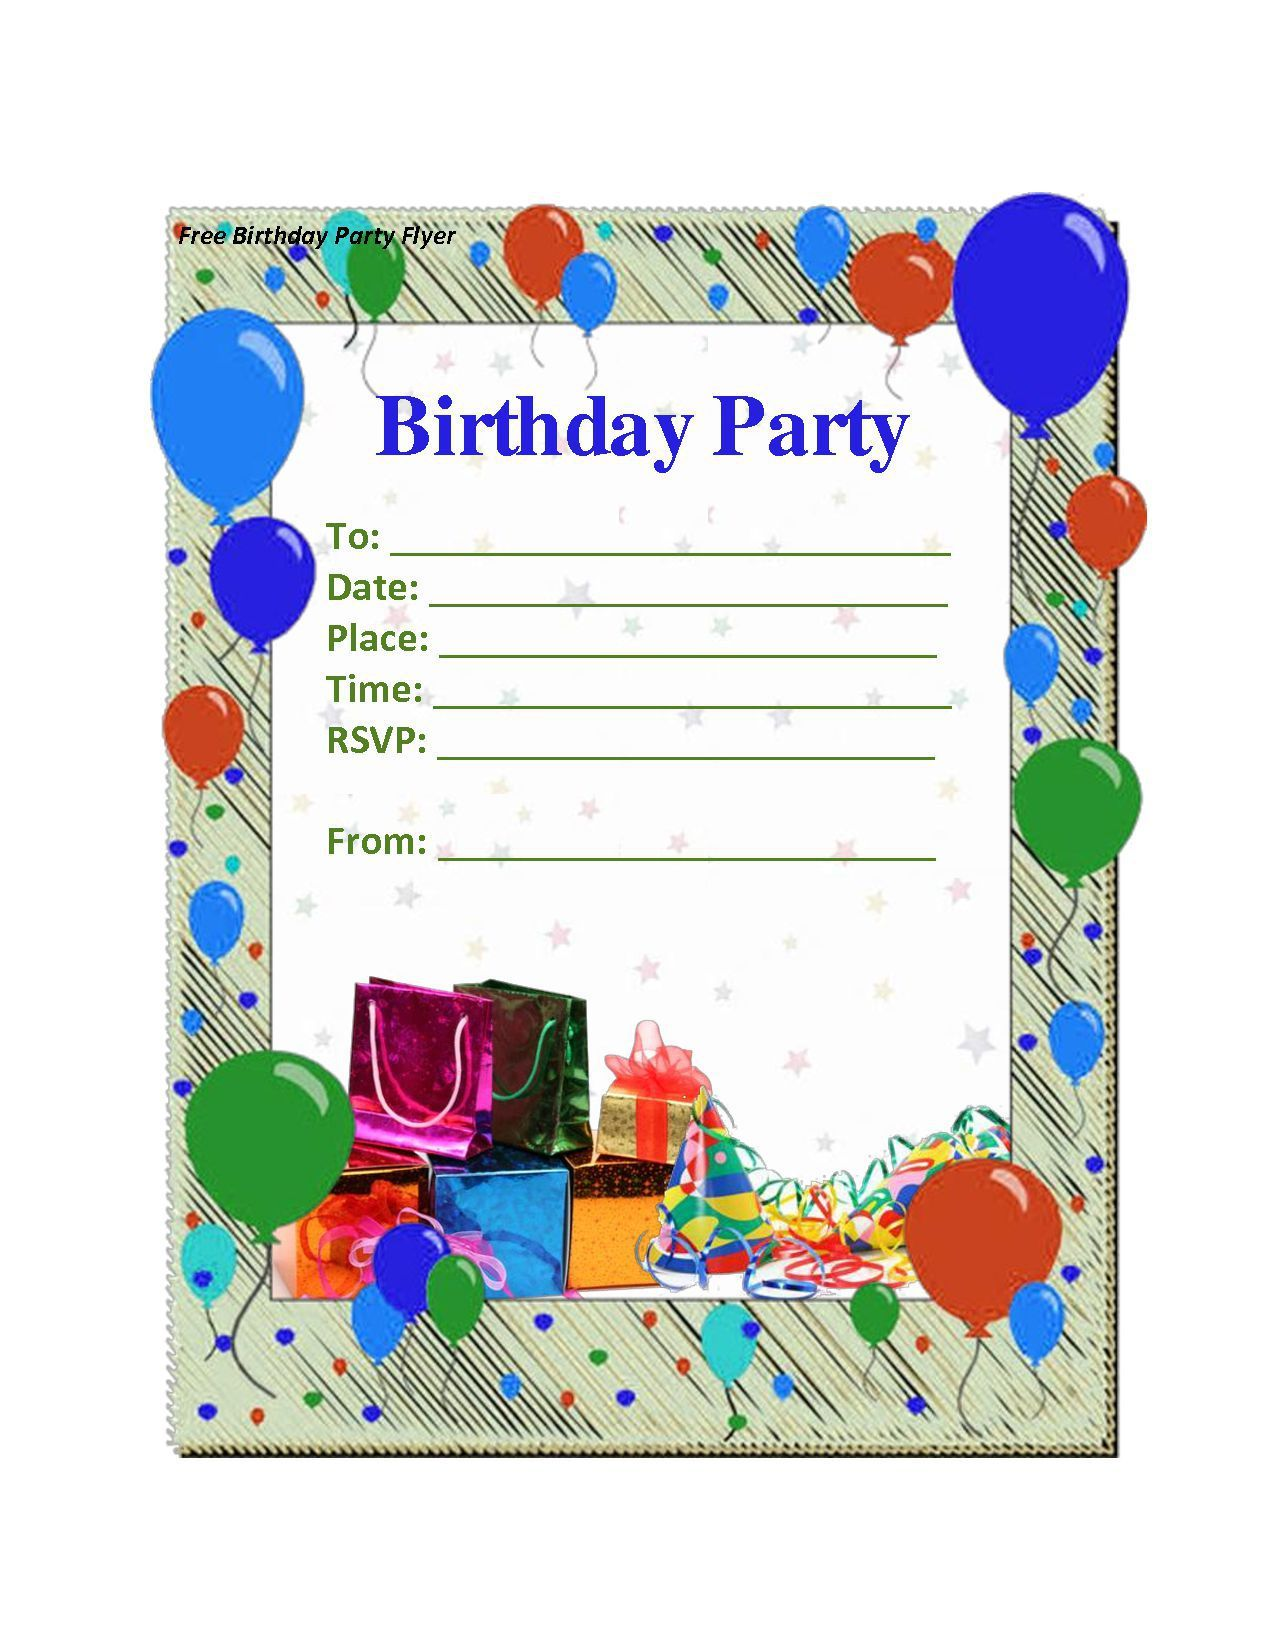 birthday invitation : how to make a birthday invitation - Free ...